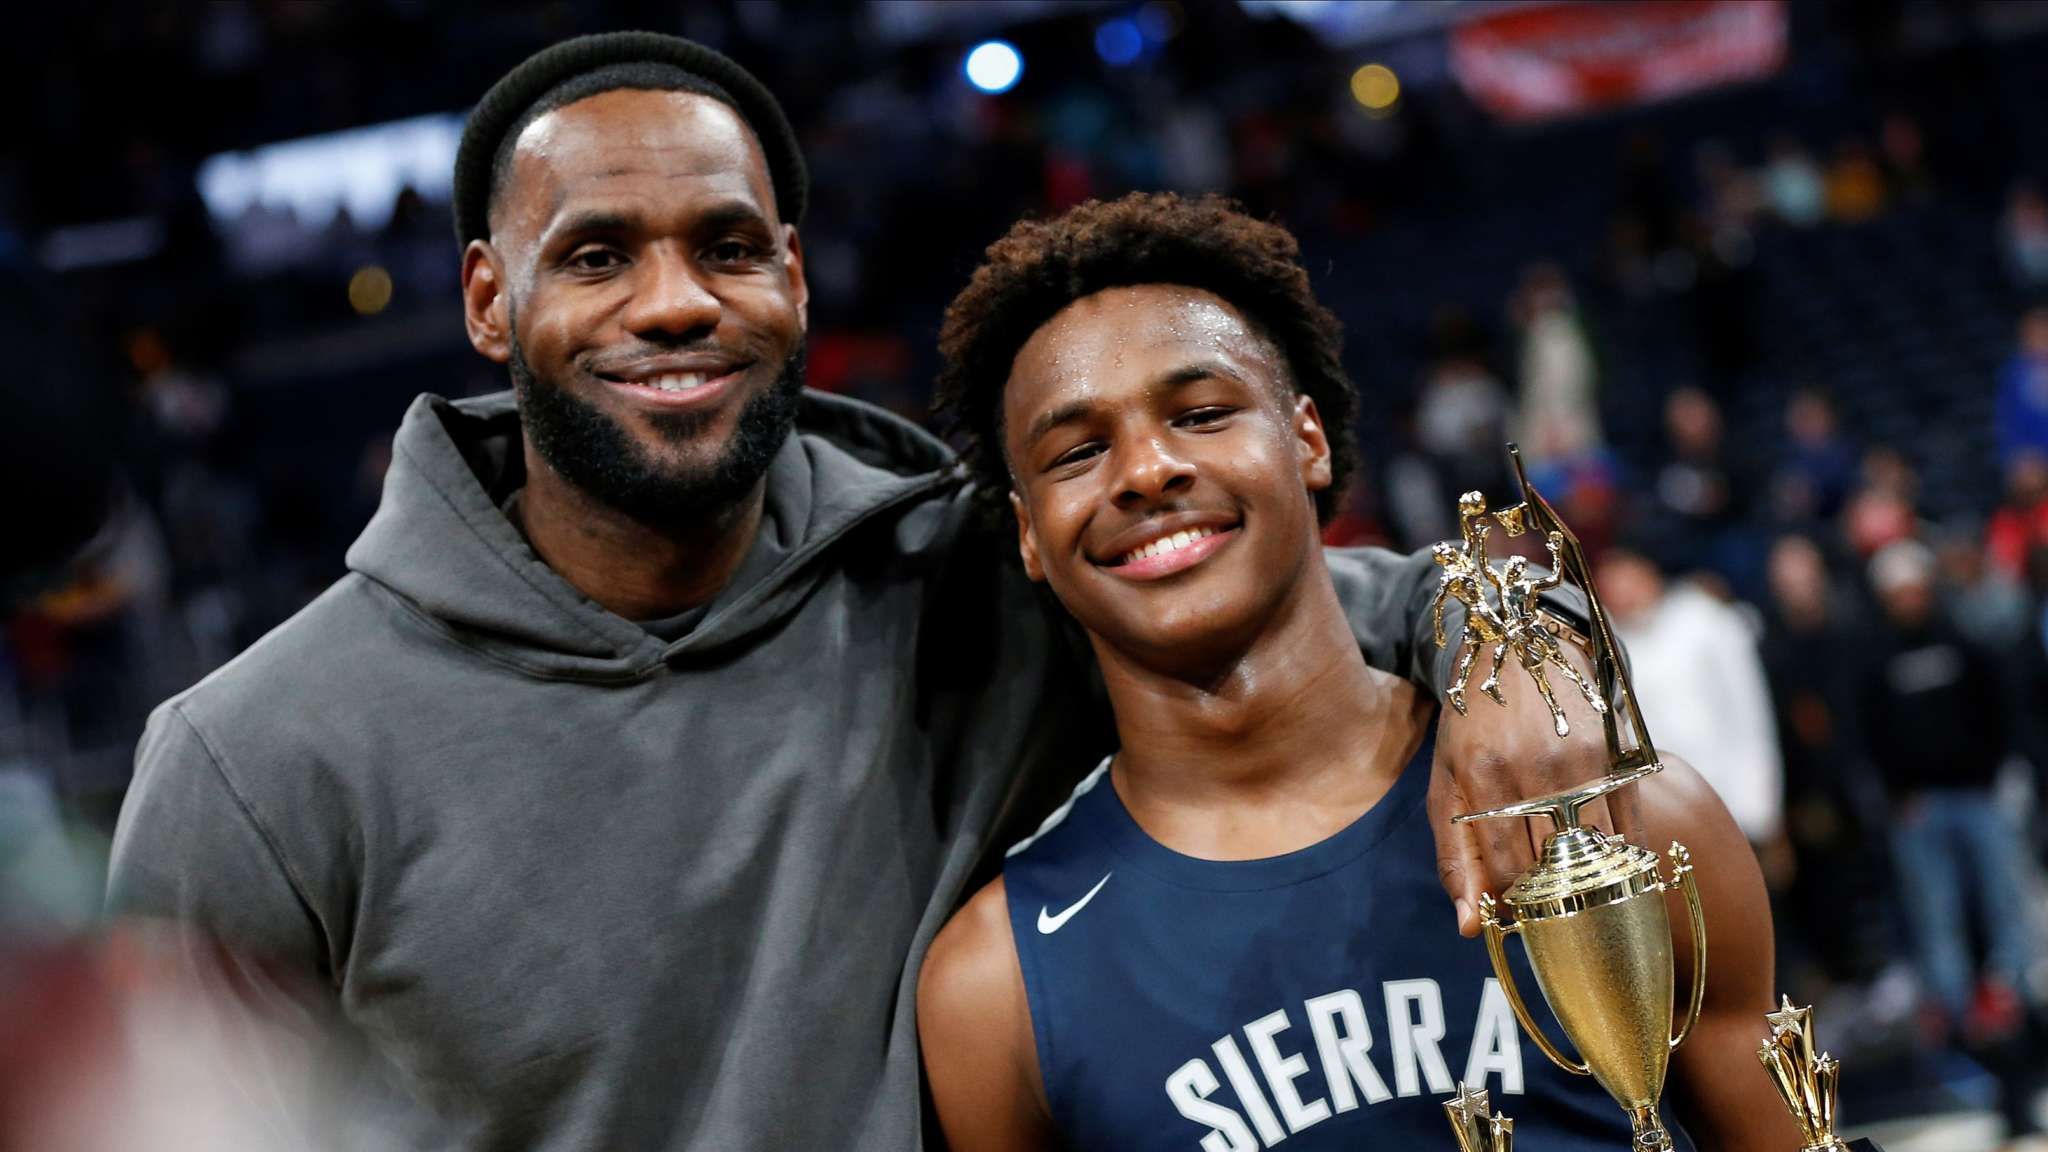 LeBron James Wishes His Son A Happy 16th Birthday – See His Emotional Message